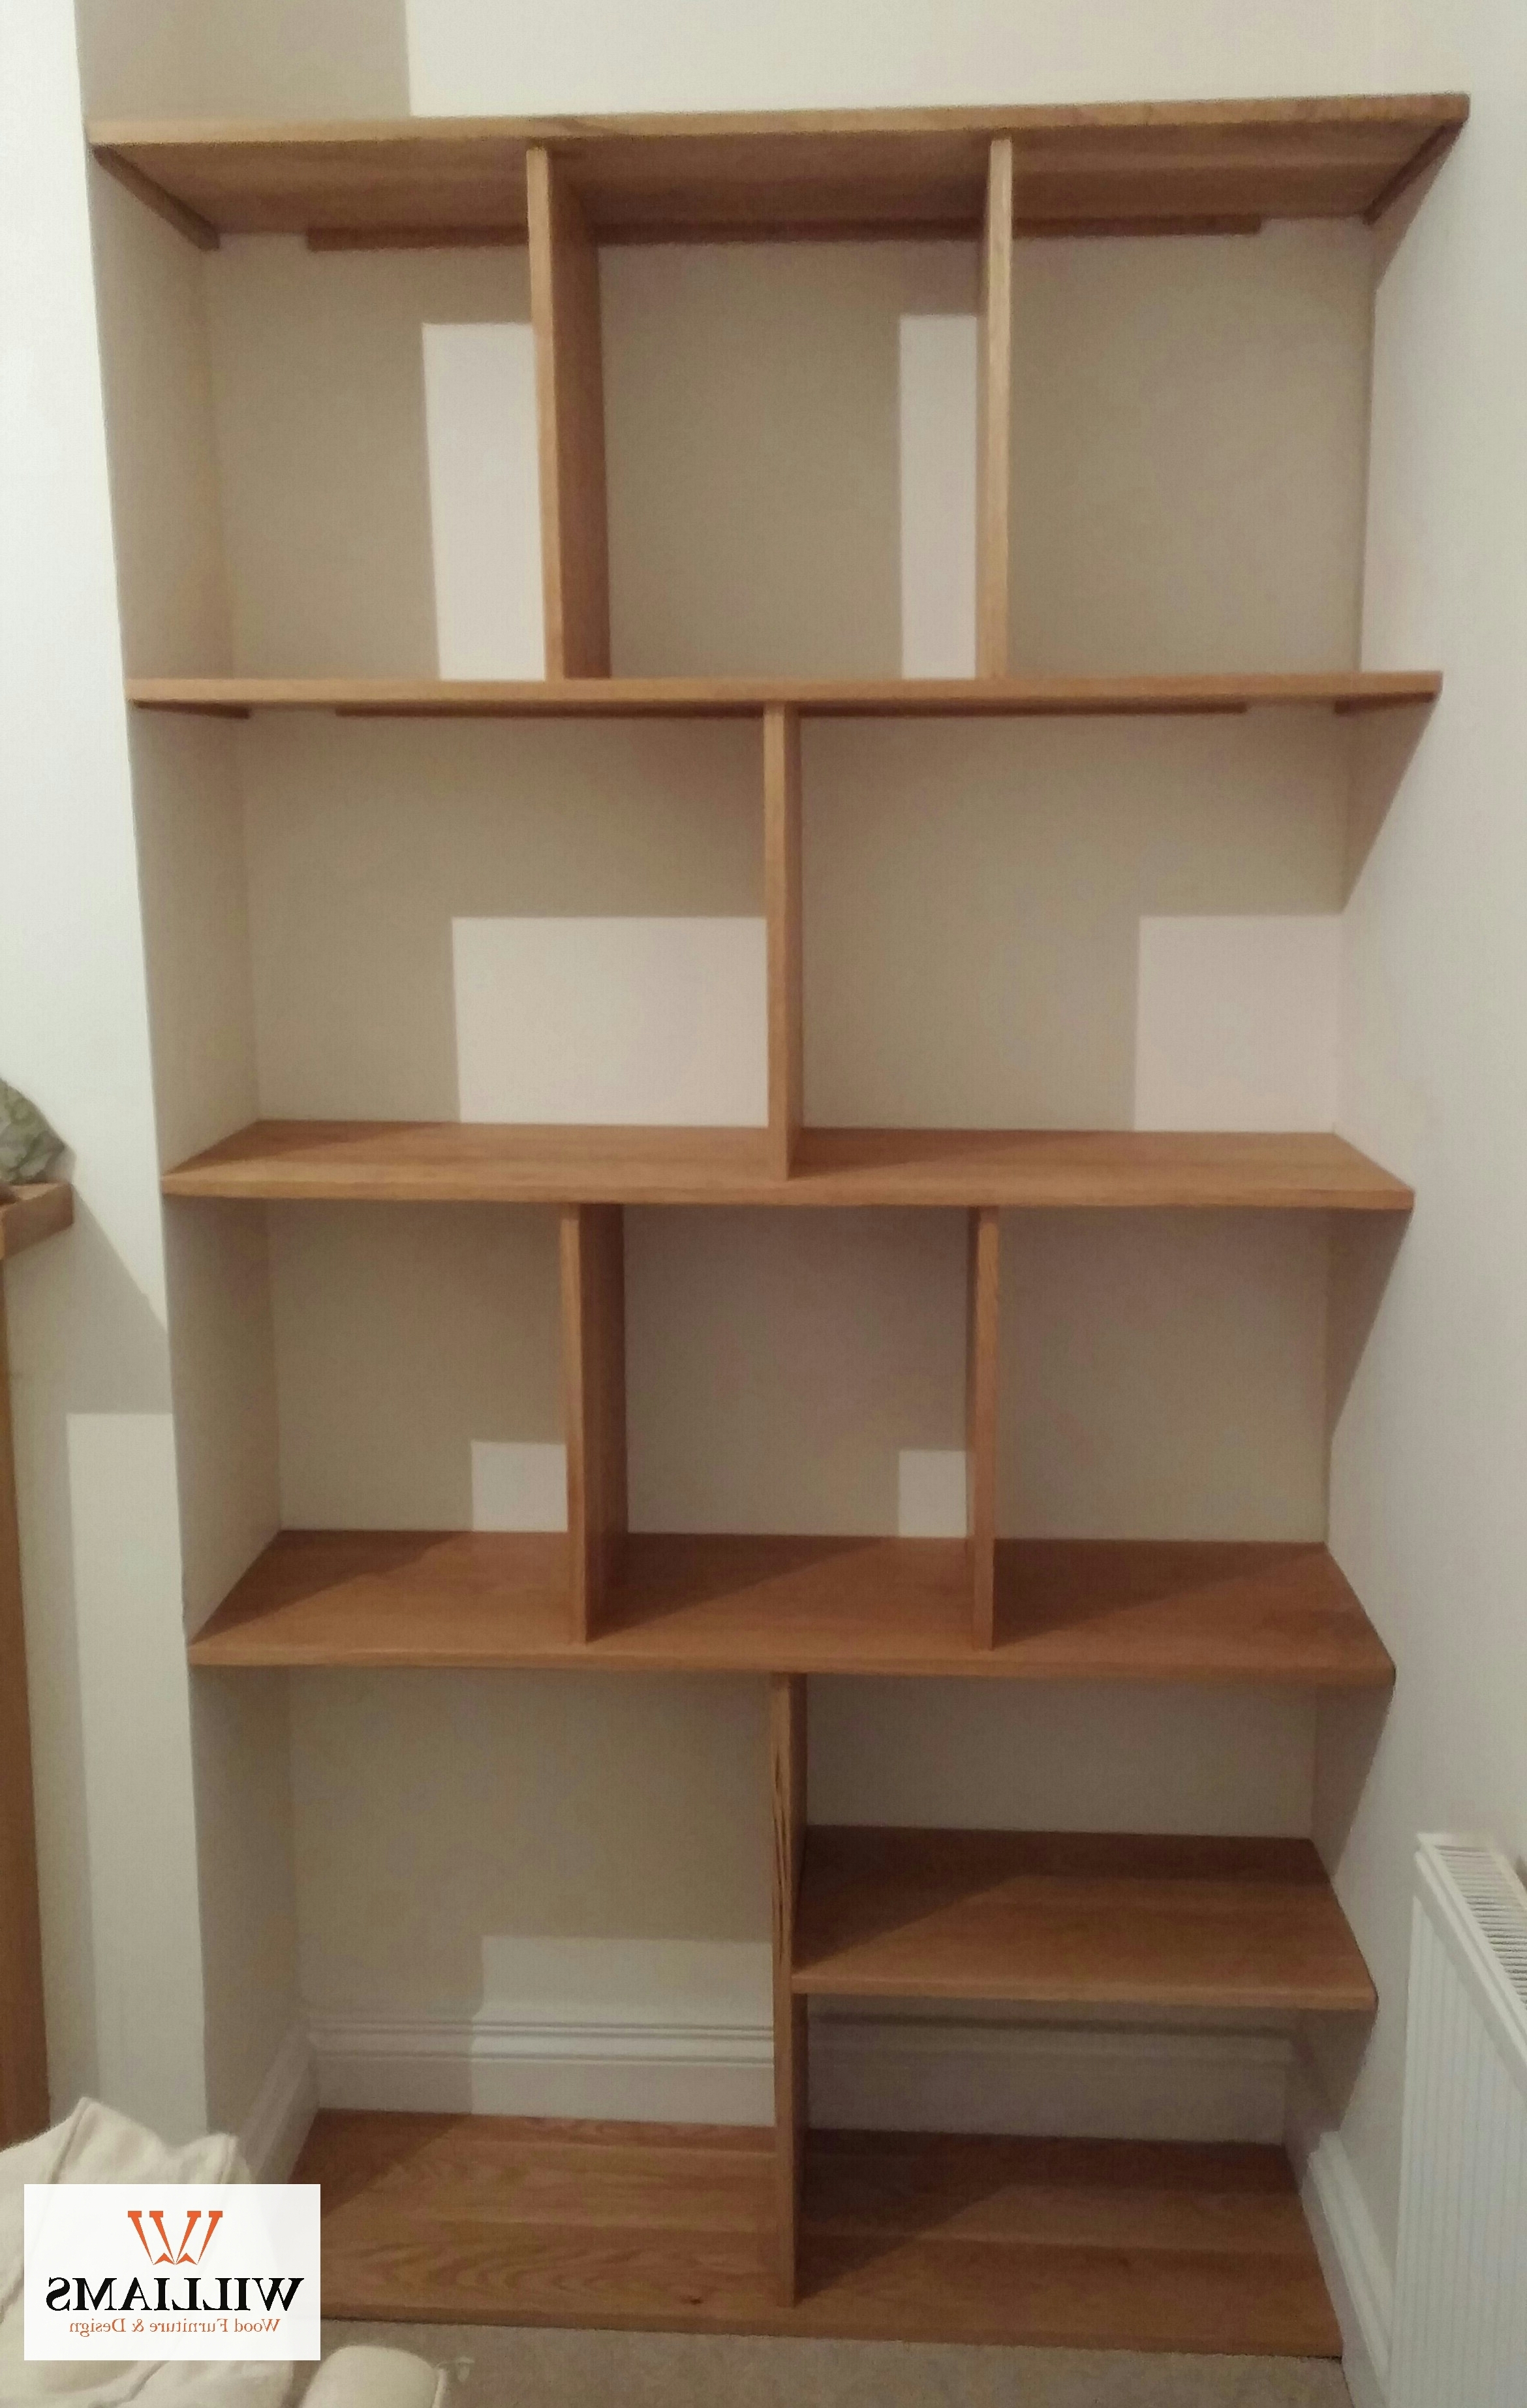 Famous Shelves : Sensational Wp Pro Oak Floating Shelves Veneered Stephen Within Fitted Shelving Systems (View 12 of 15)